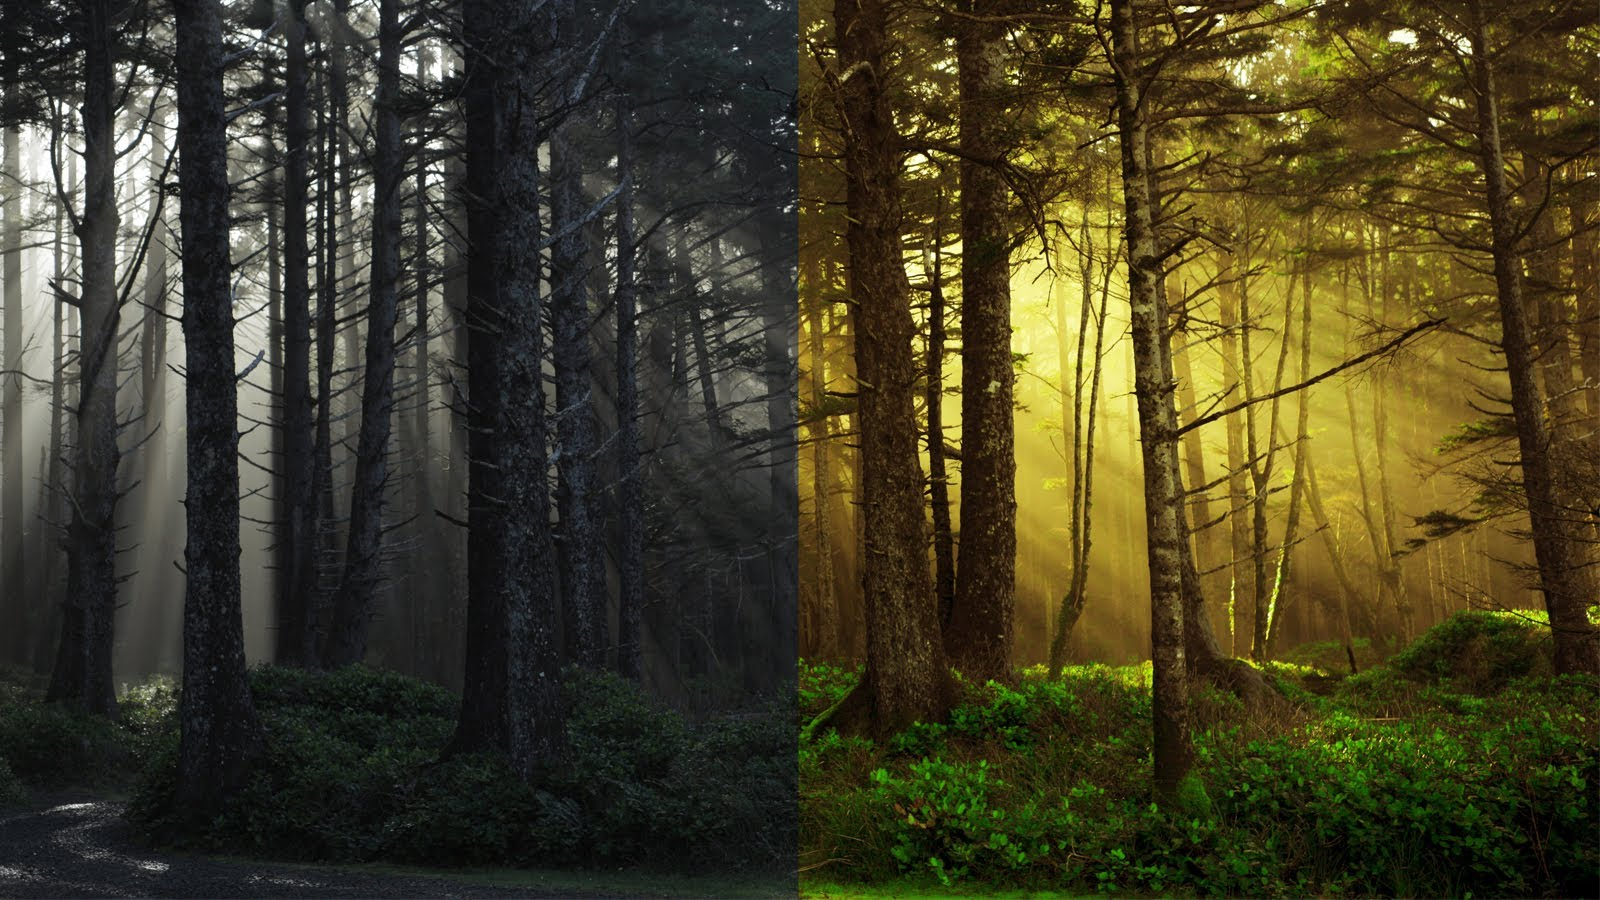 CS5 Photoshop Photo Editing: How to make intense color warm hued.